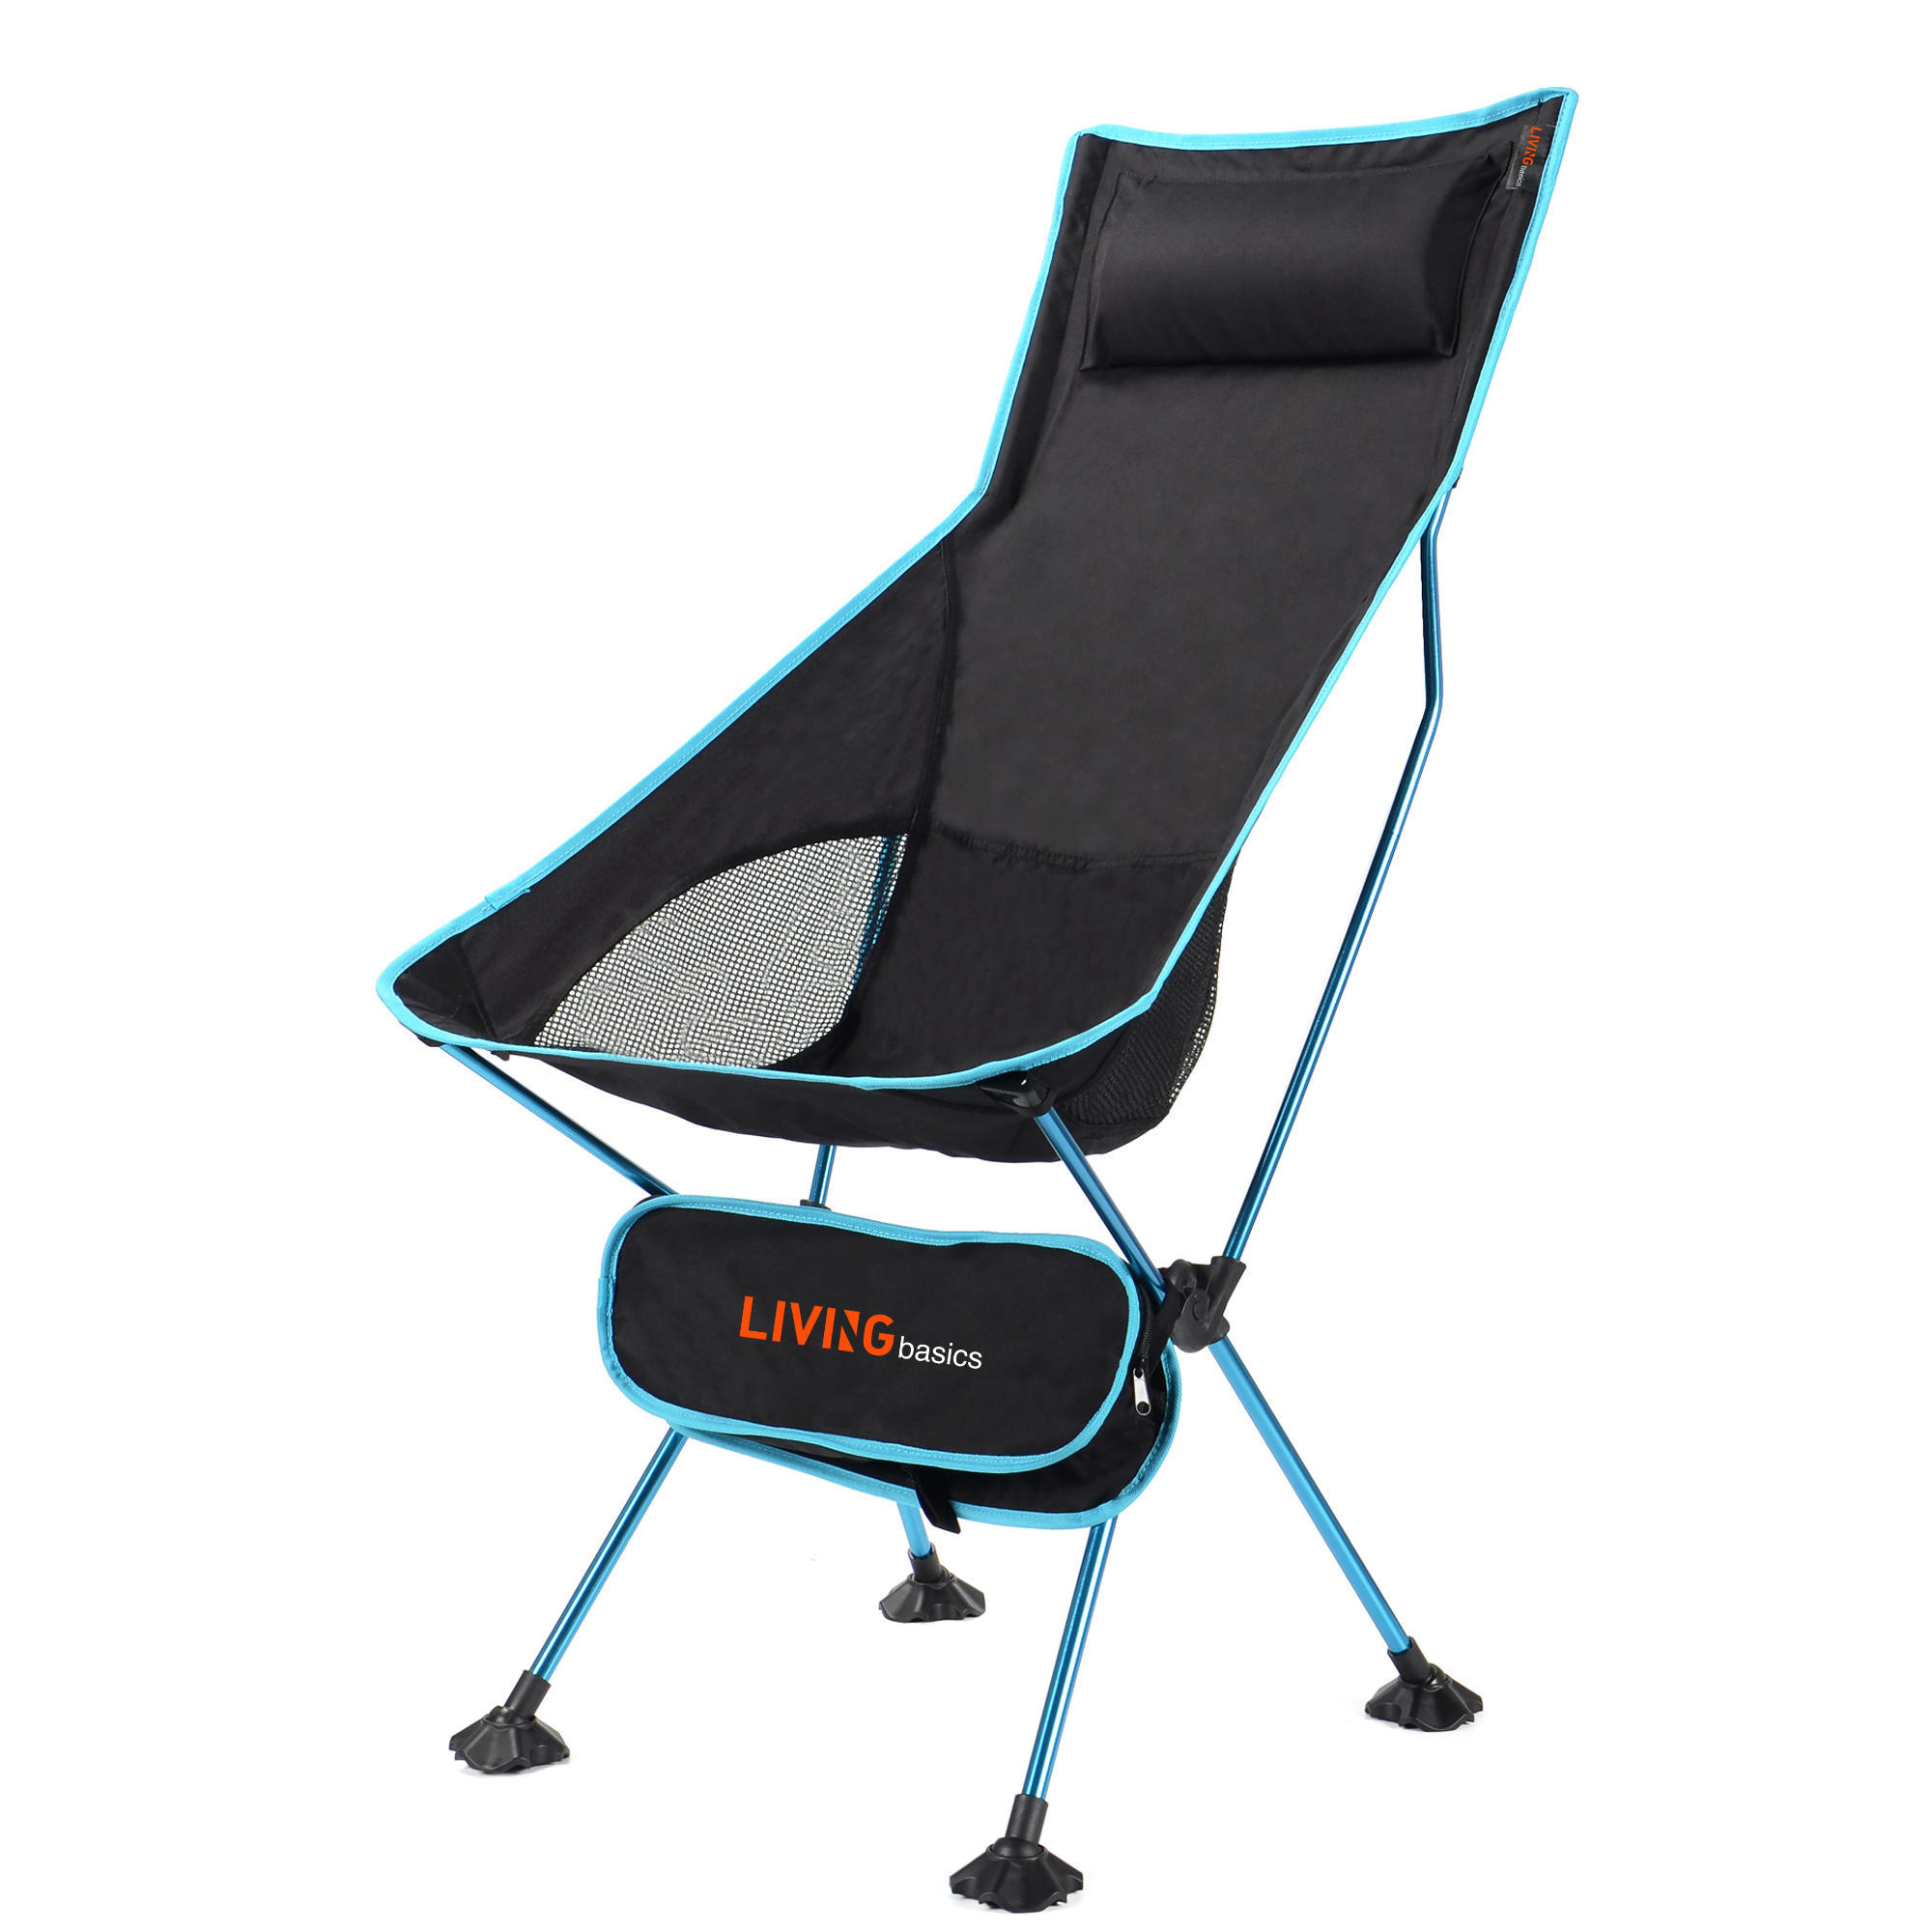 Afd17 livingbasics lvb2 7055 blue camping chairs tables portable camping chair with headrest high back livingbasics